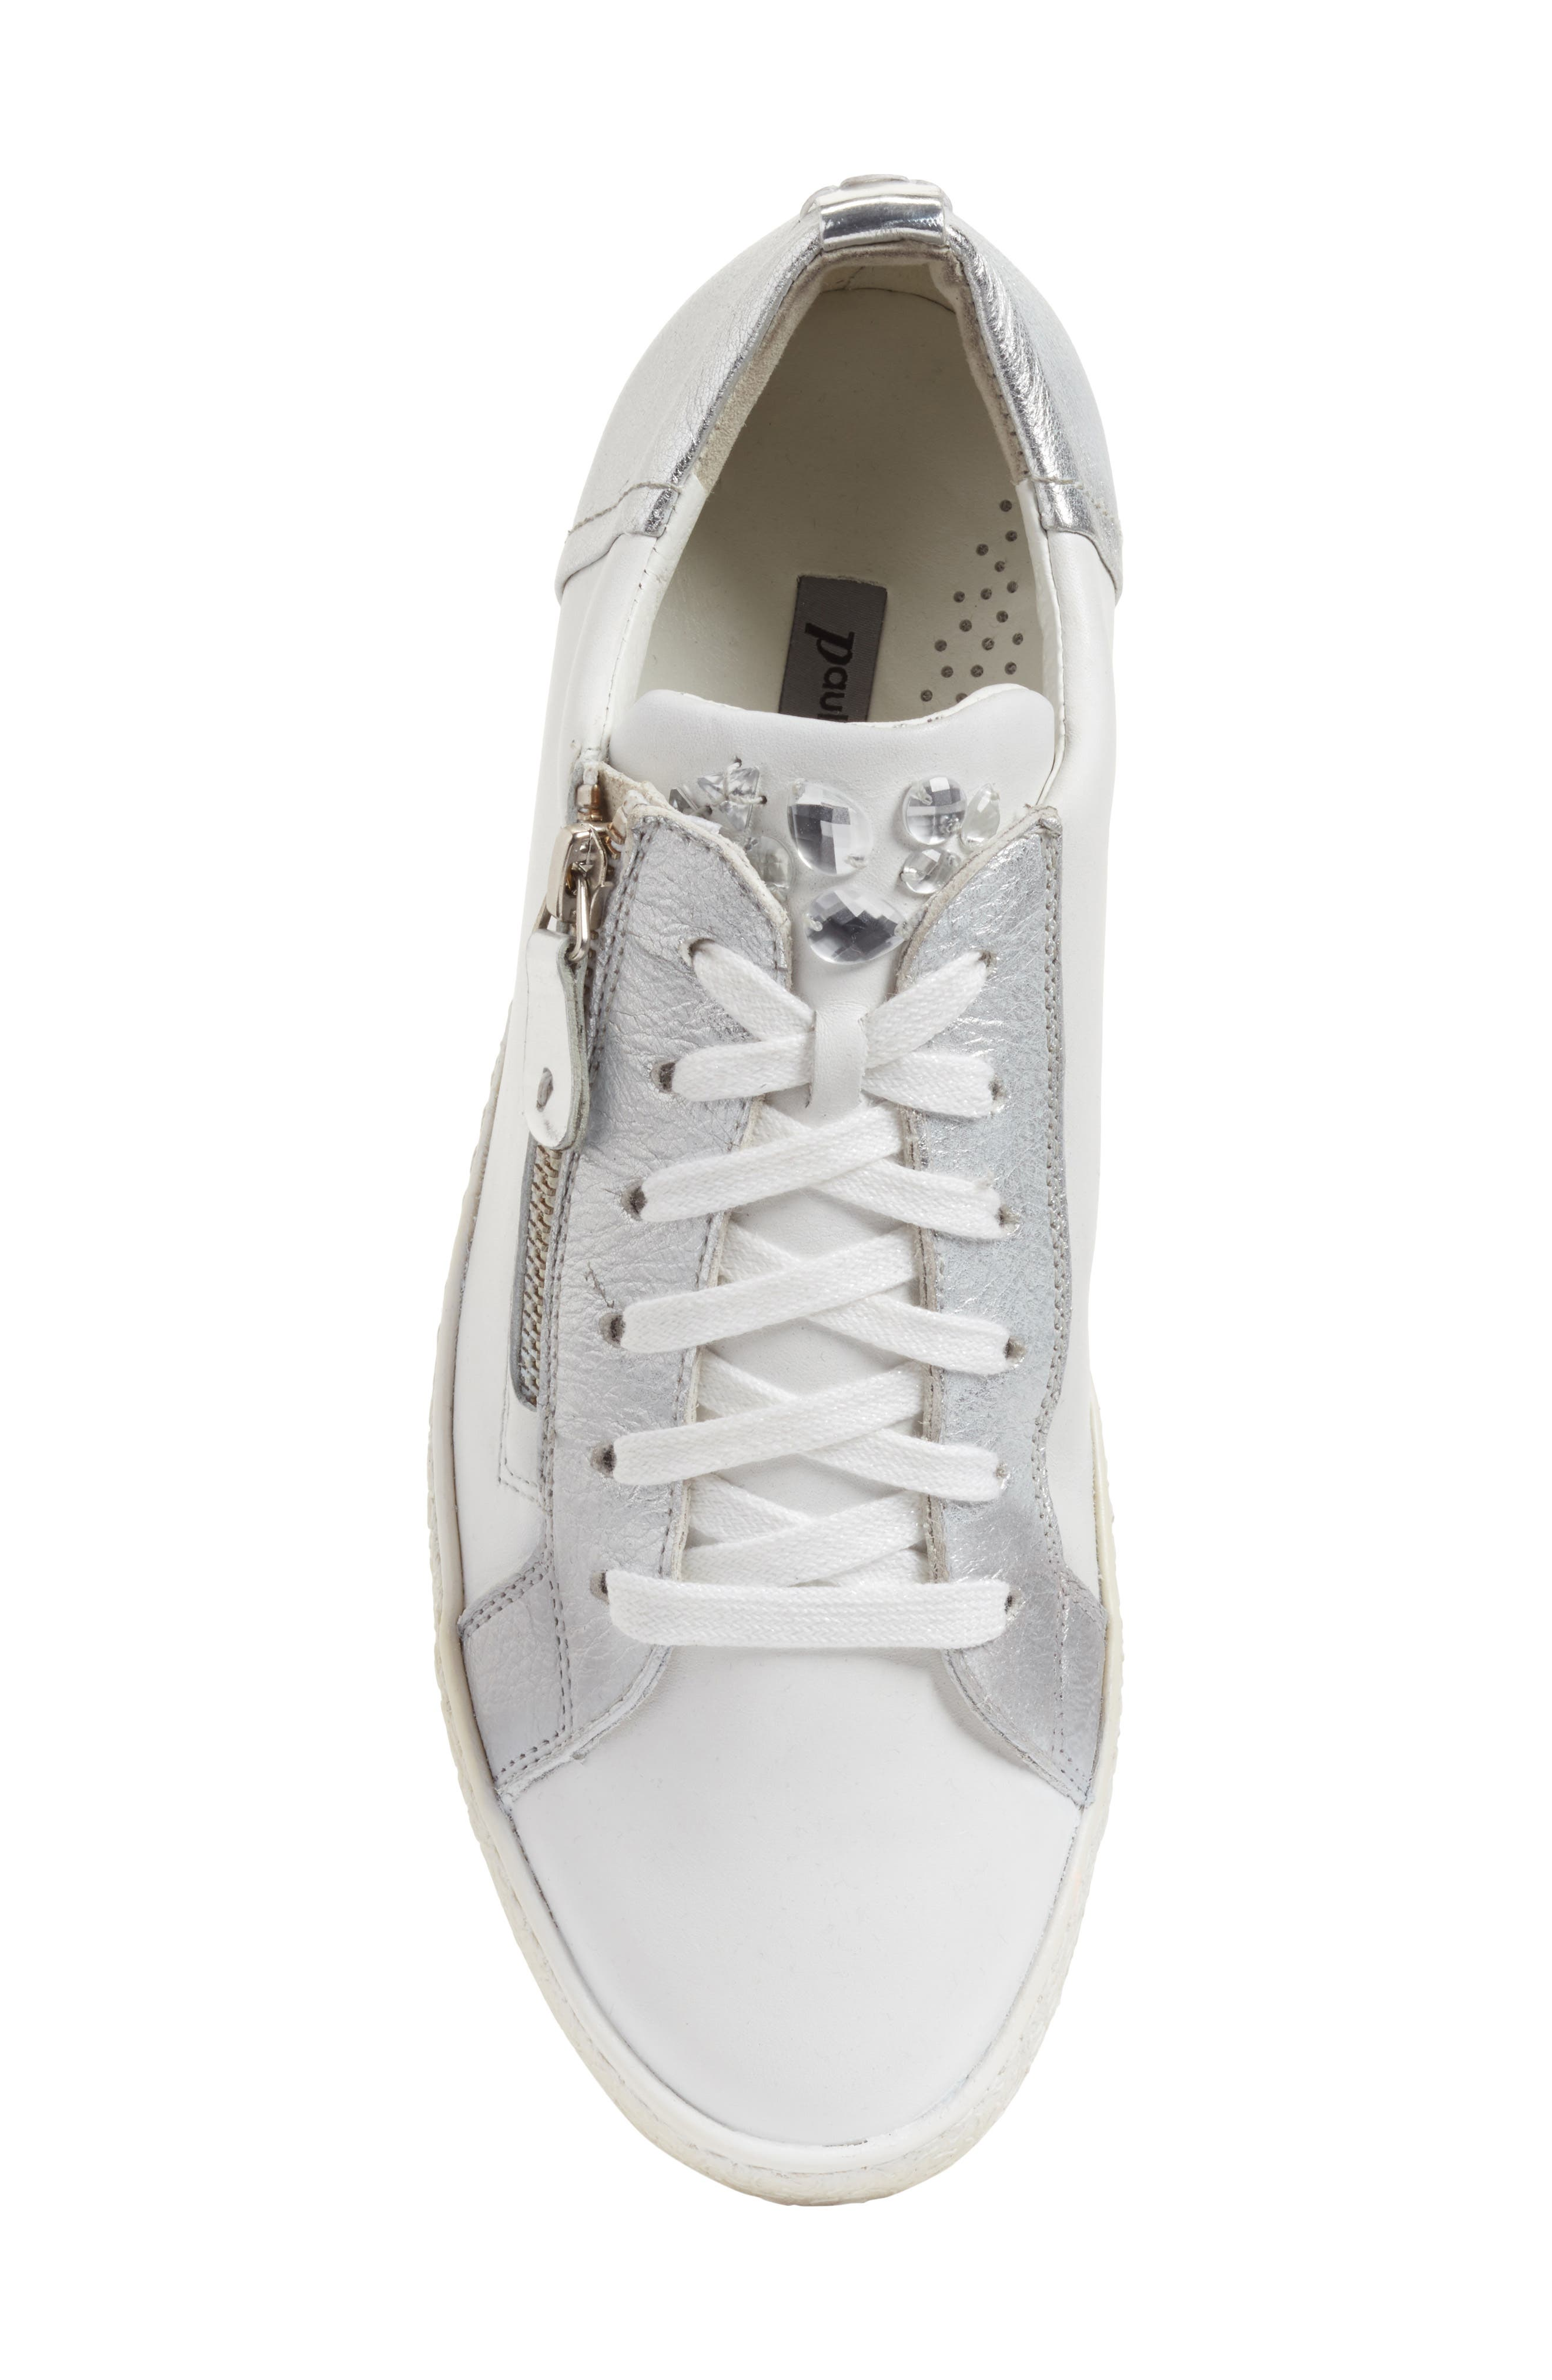 Minnie Sneaker,                             Alternate thumbnail 6, color,                             White/ Silver Leather